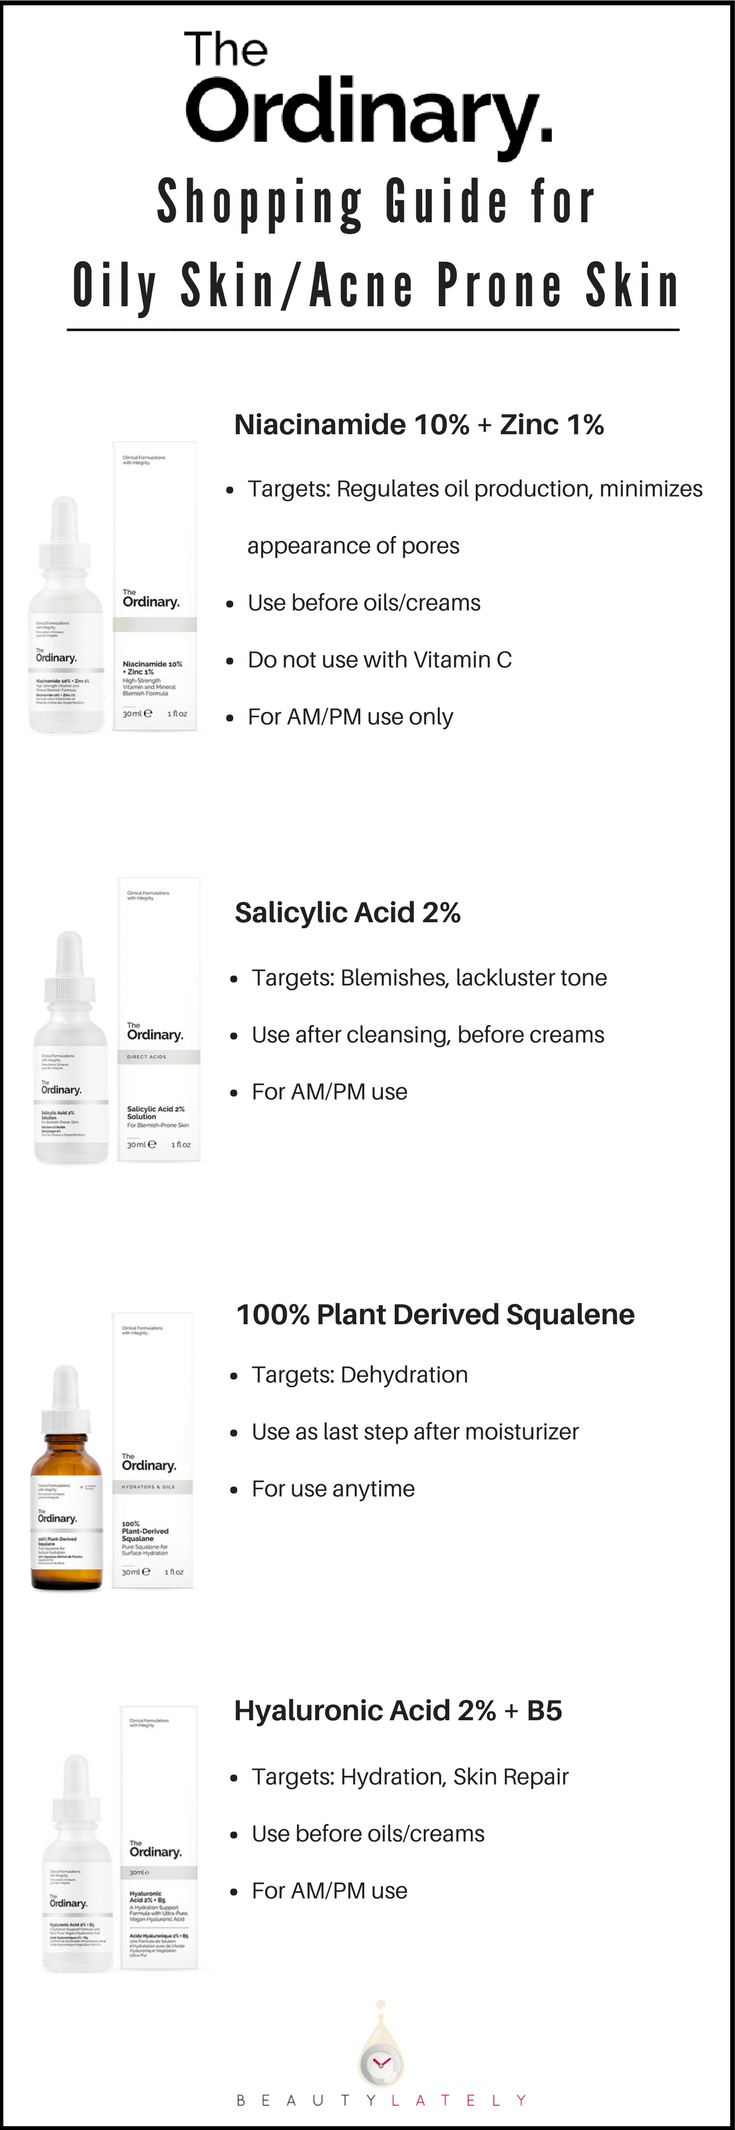 The Ordinary Oily Acne Prone Skin Guide